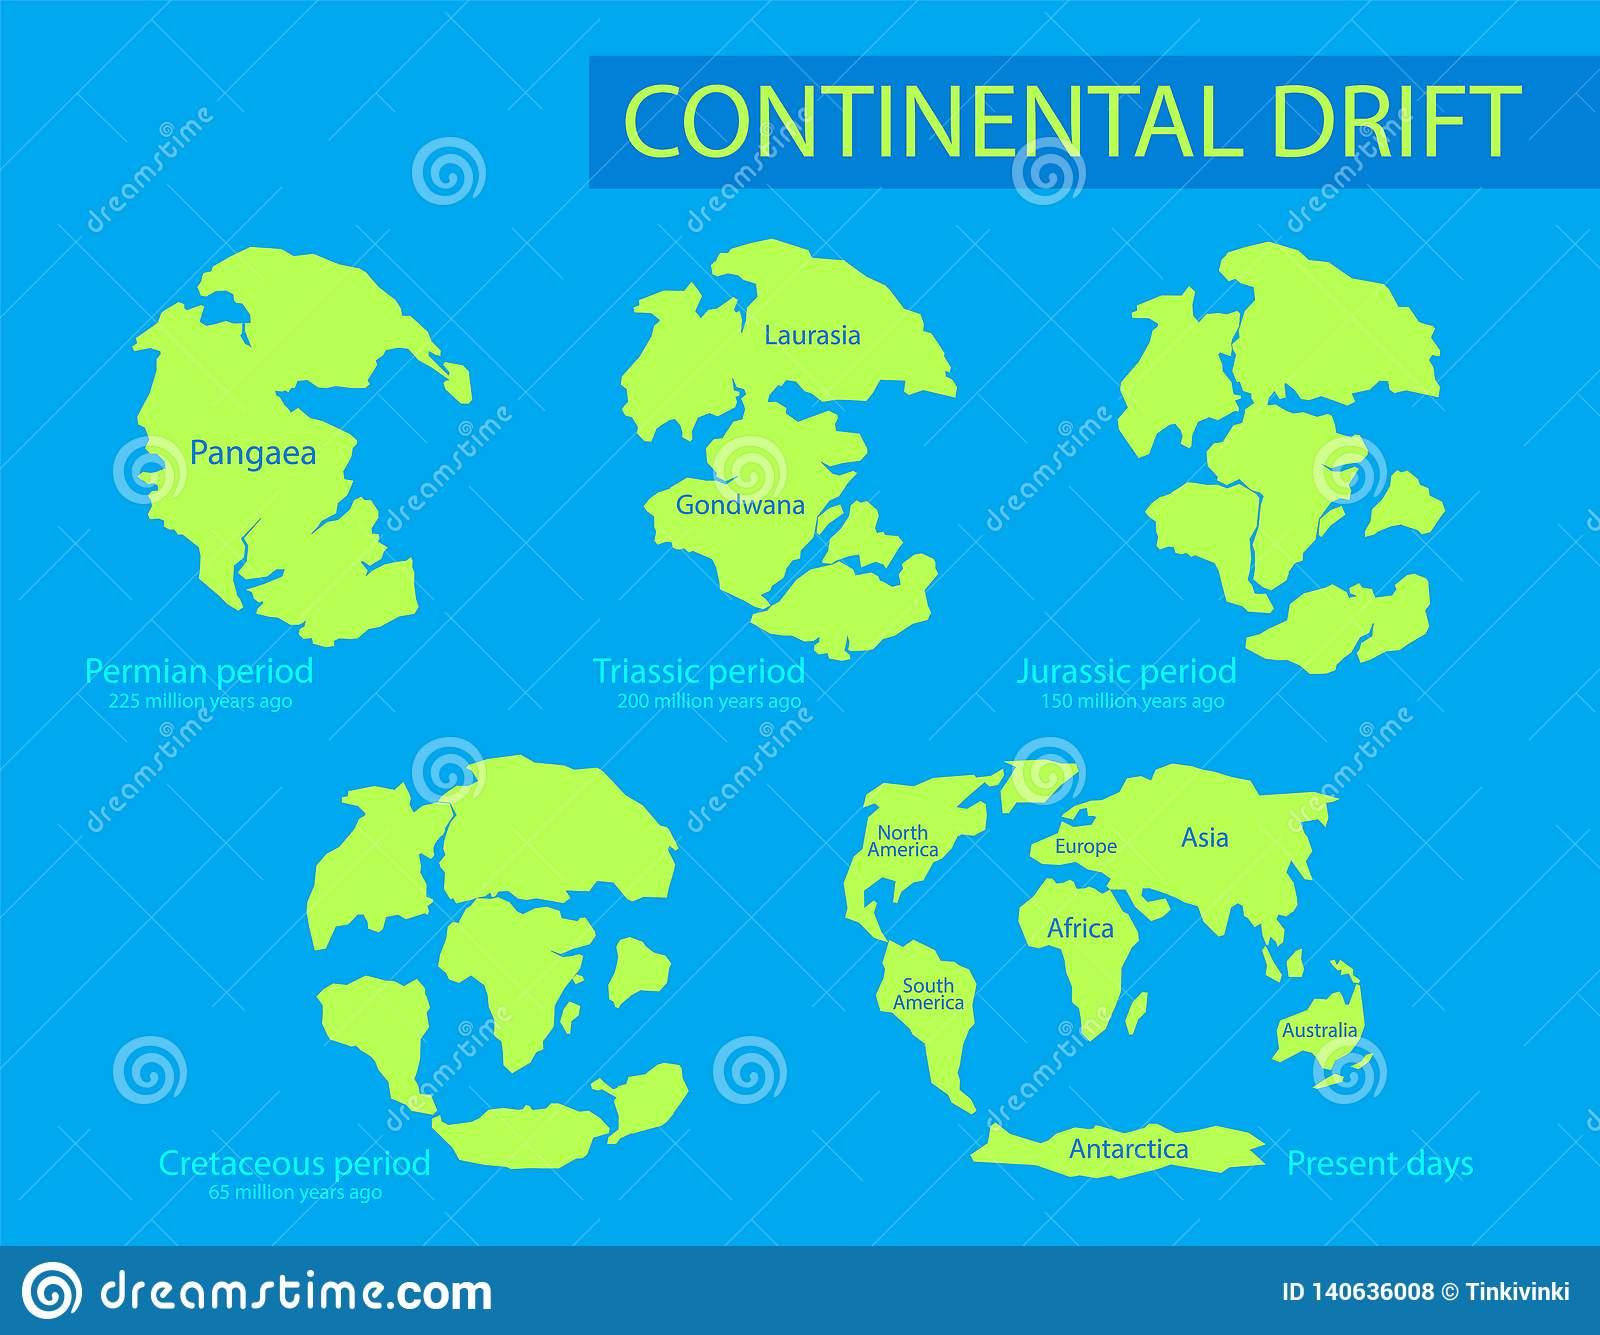 Continental drift. The movement of mainlands on the planet Earth in different periods from 250 MYA to Present. Vector